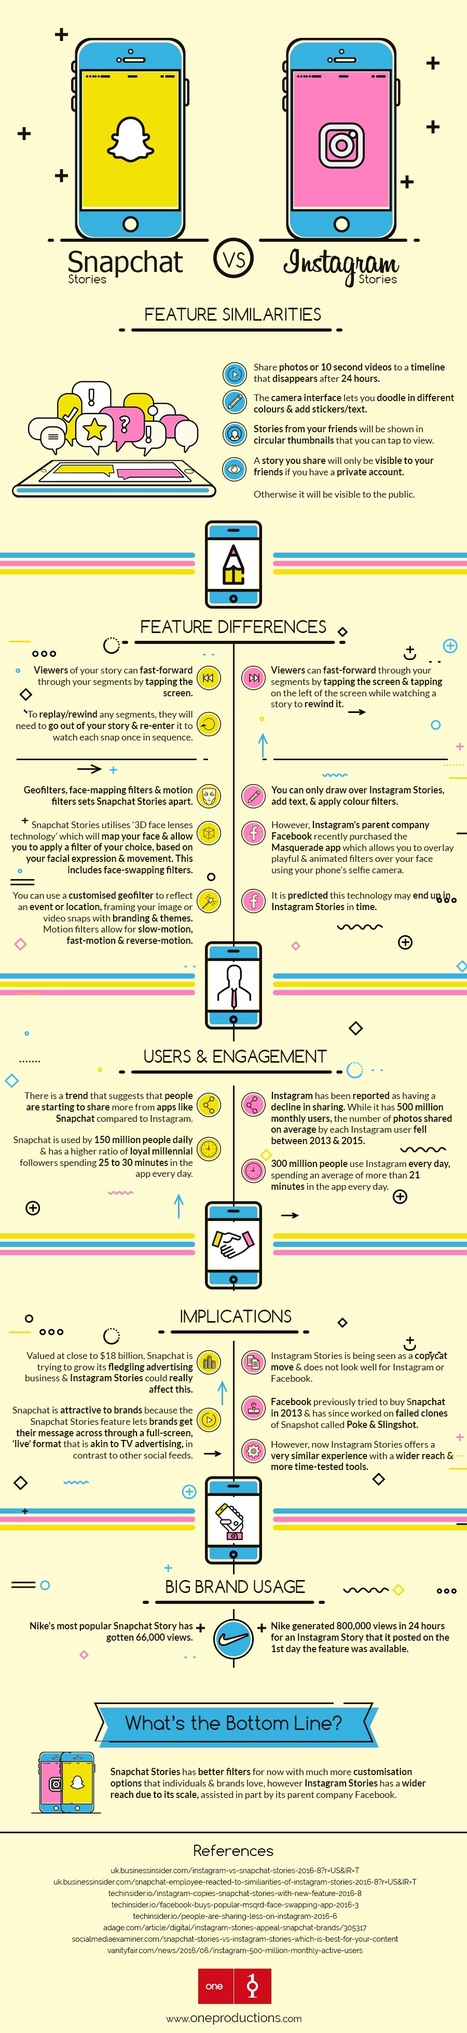 Snapchat Stories vs Instagram Stories #Infographic | Tourism Social Media | Scoop.it